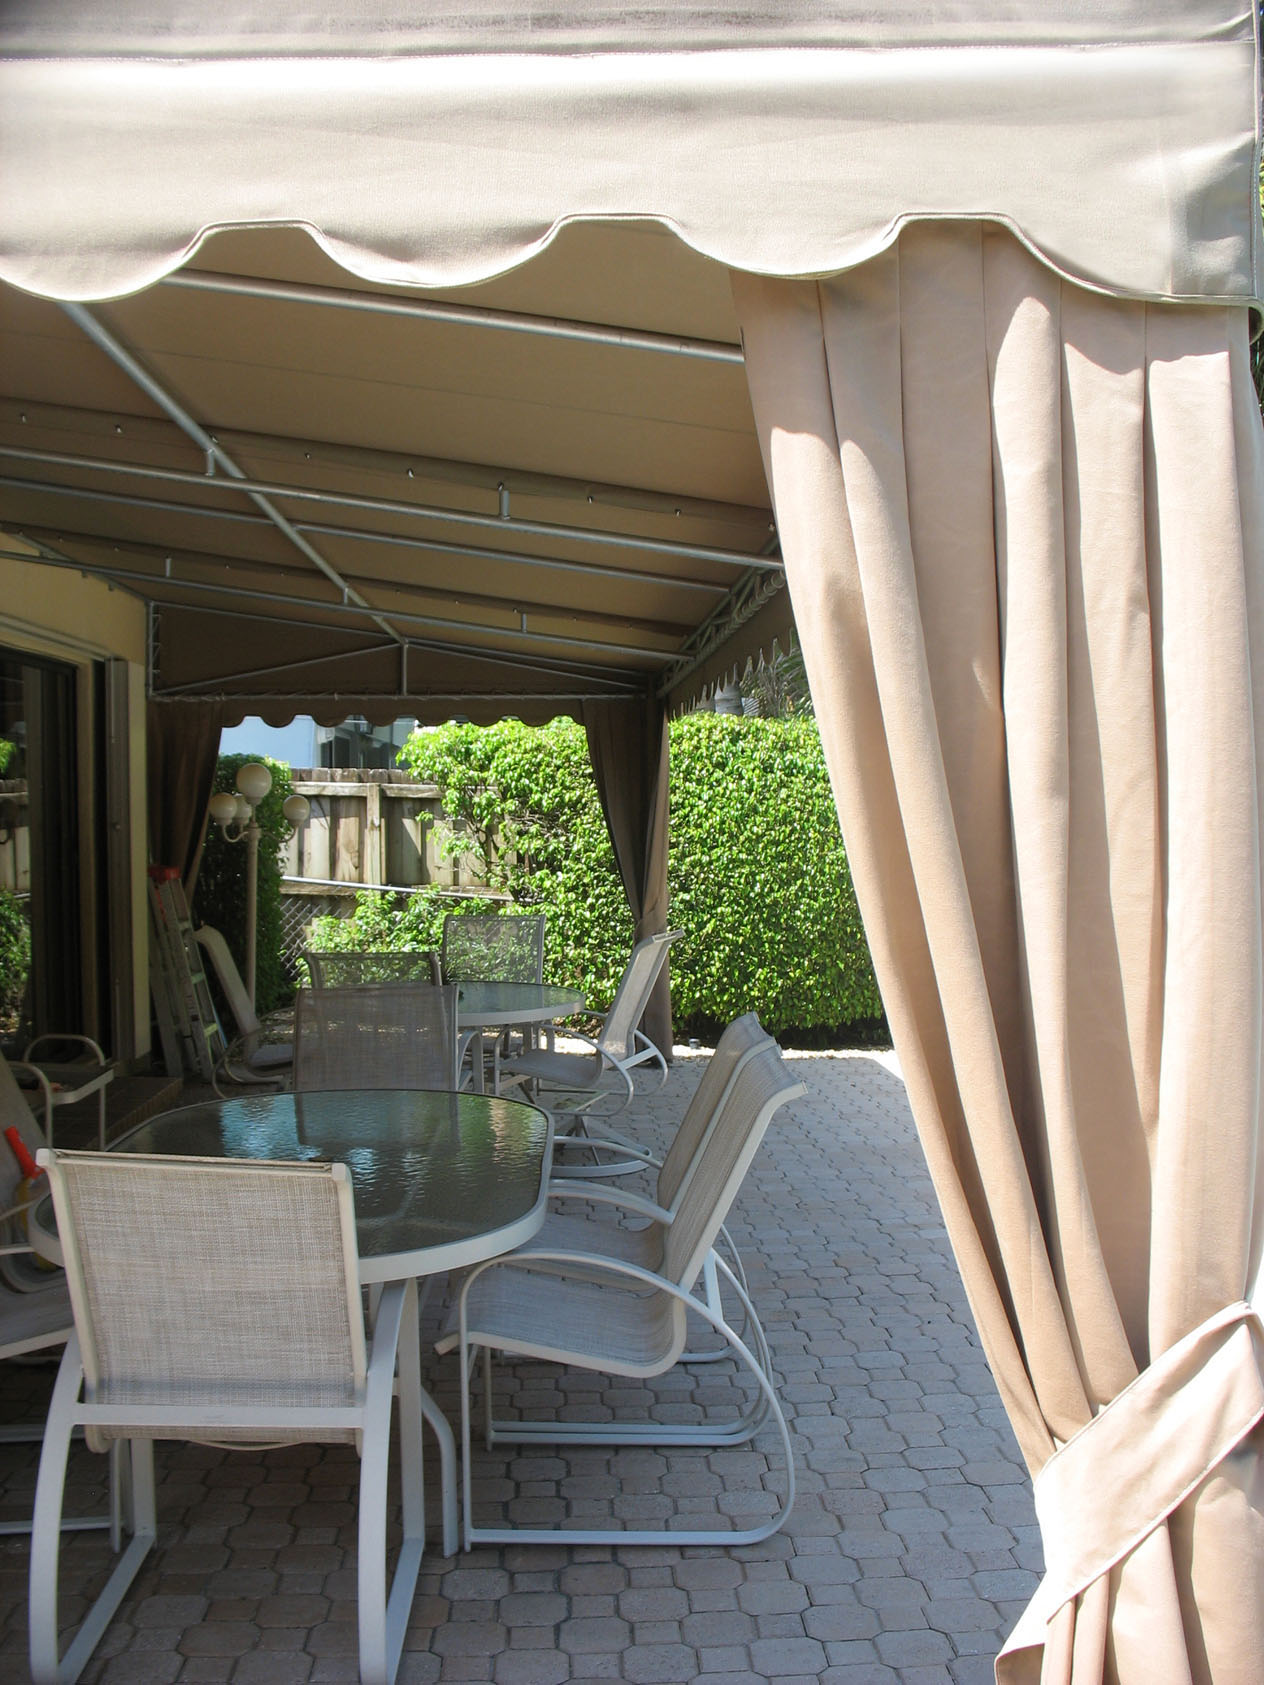 Lean To Patio Awning with Curtains